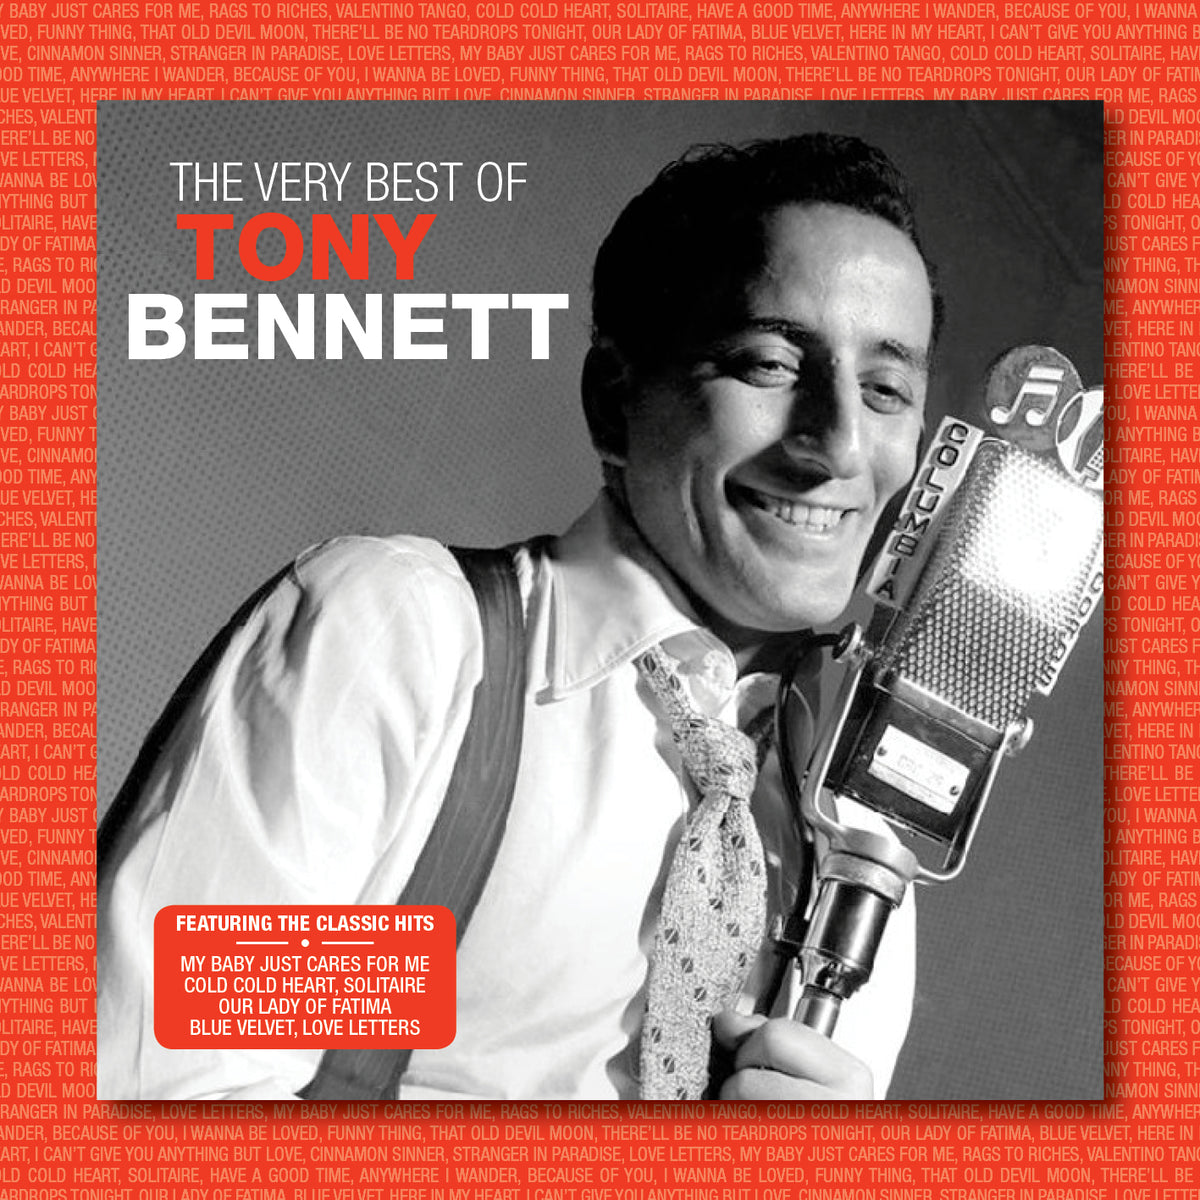 FANFARE179 - TONY BENNETT - THE VERY BES